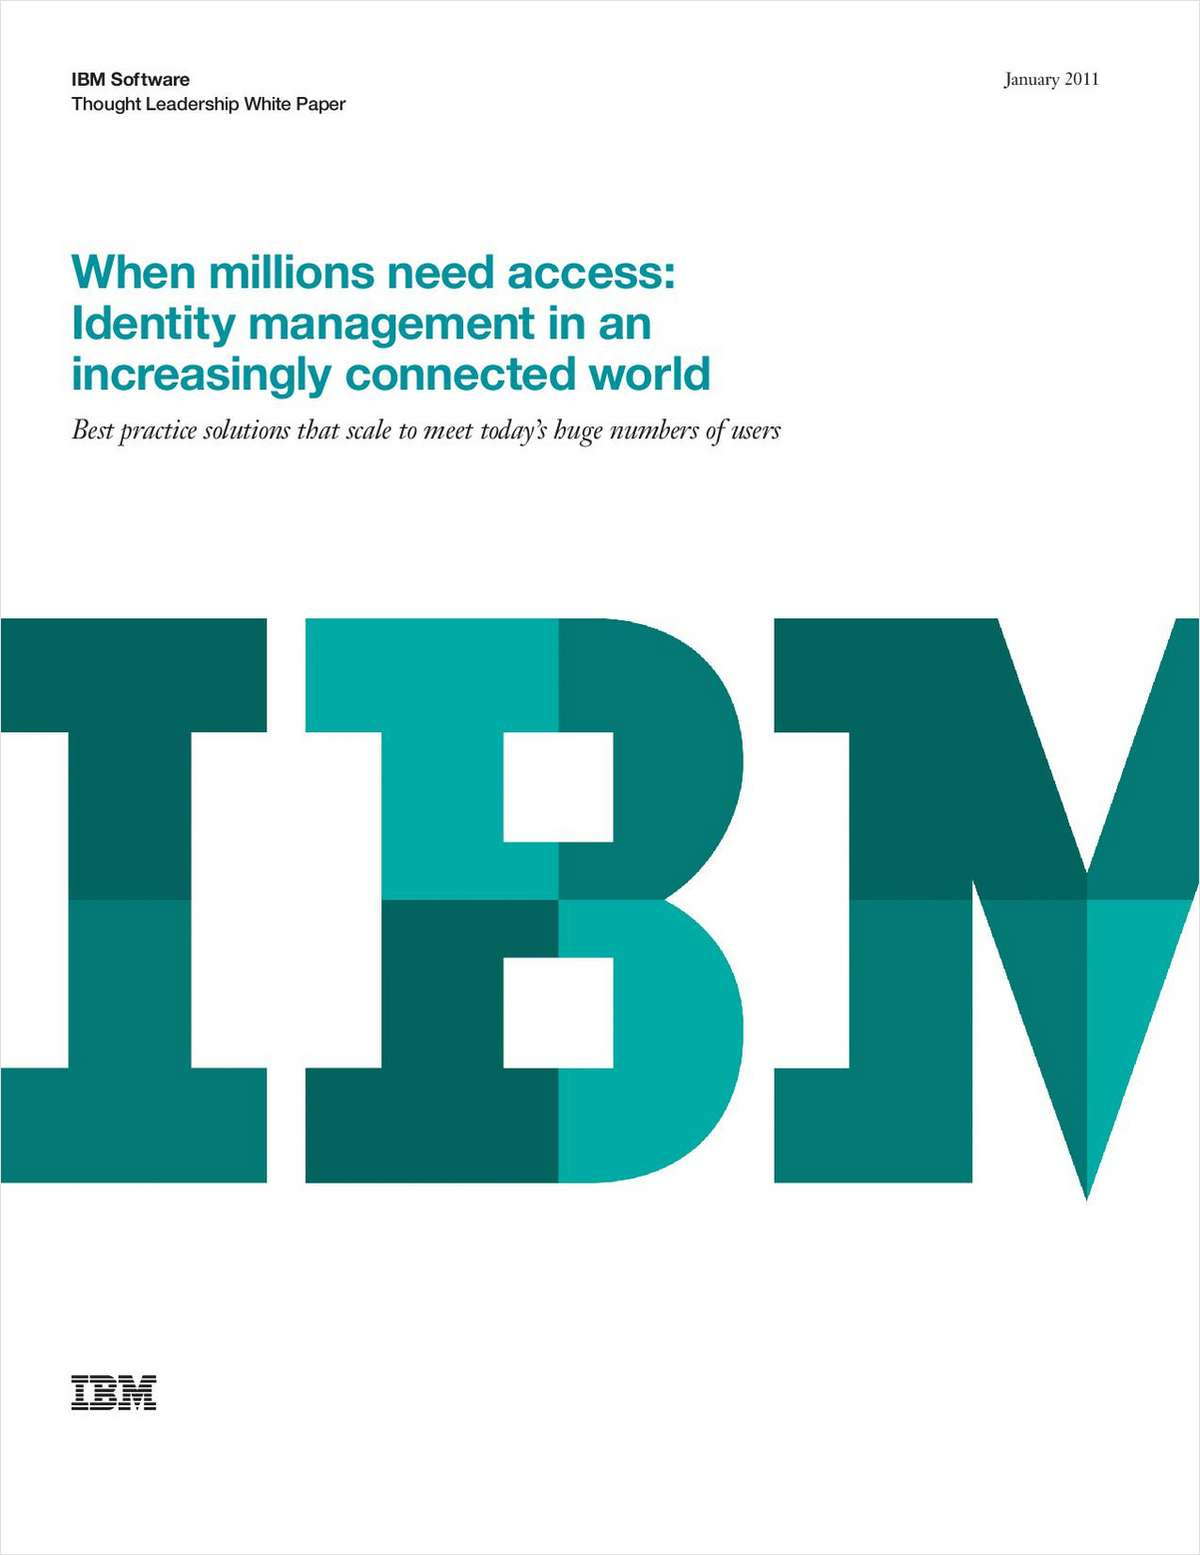 When Millions Need Access: Identity Management in an Increasingly Connected World